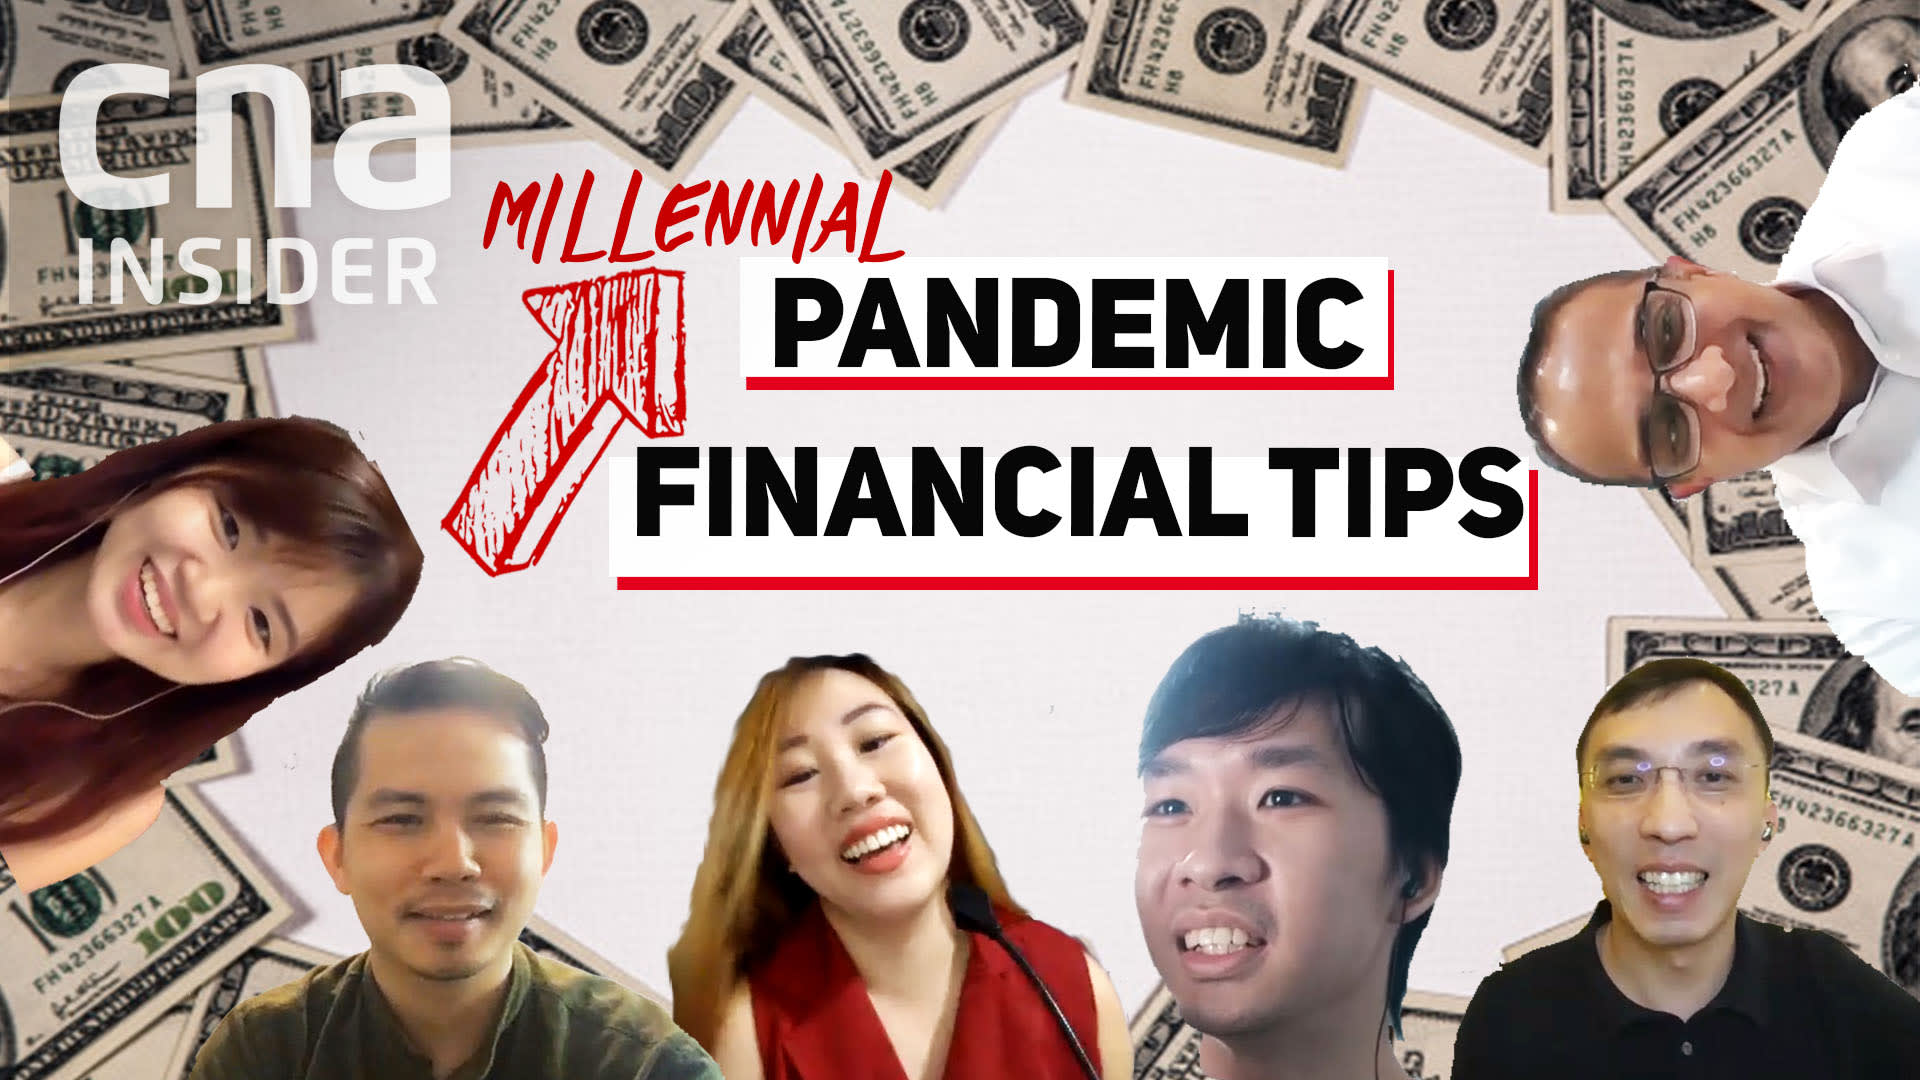 Pandemic financial advice for Millennials (by mostly Millennials)